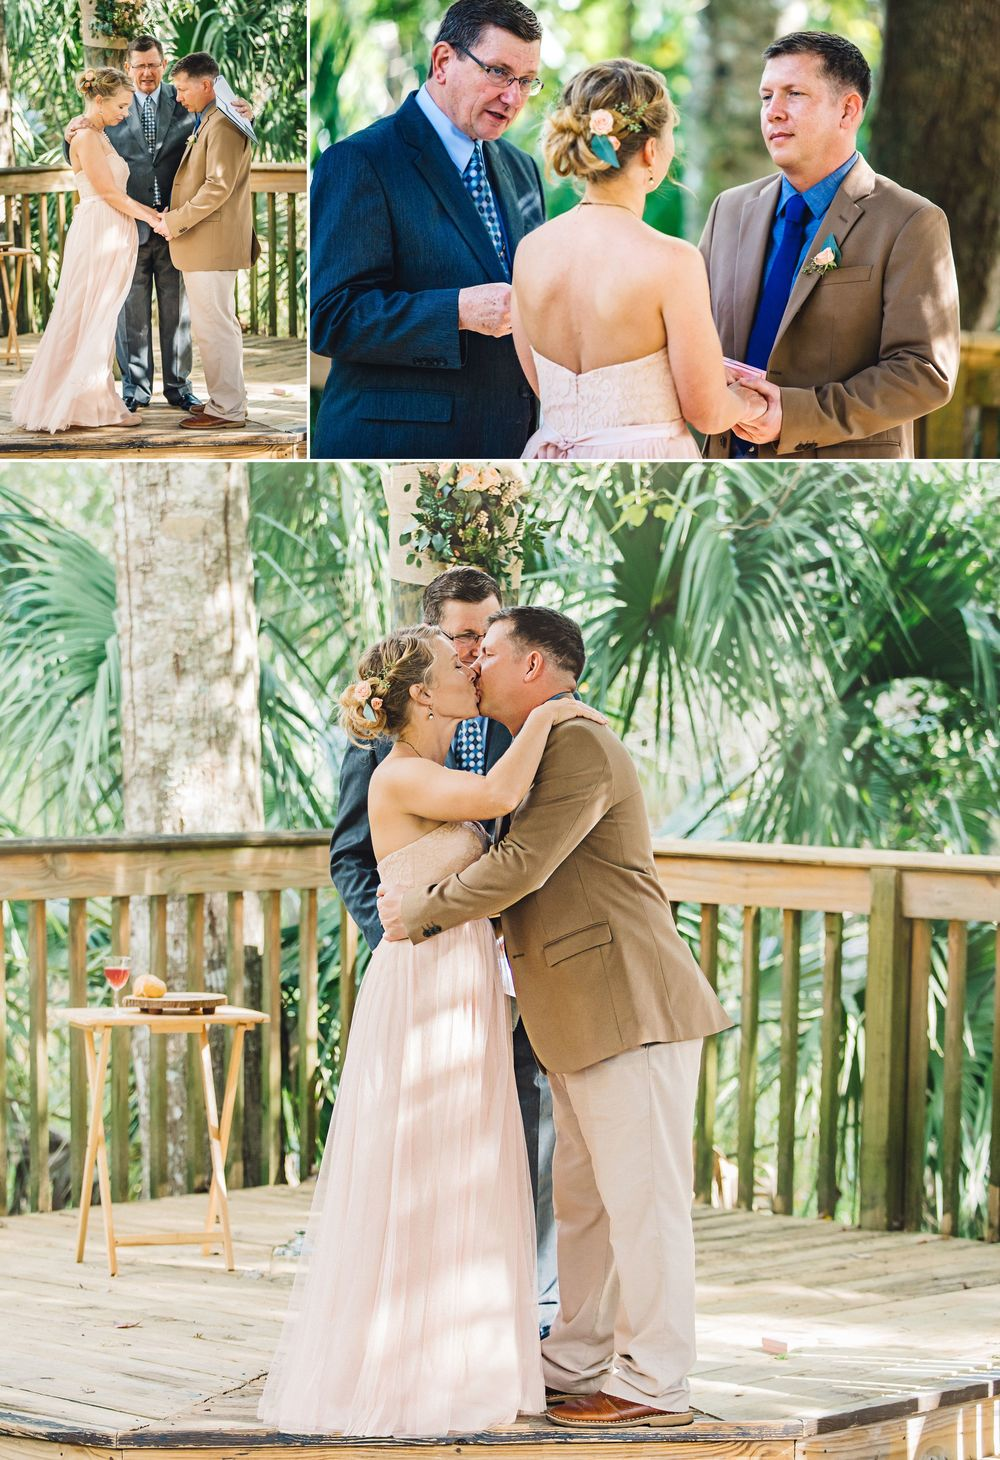 Orlando Outdoor Wedding Langford Park - Blog ShainaDeCiryan.com 17.jpg